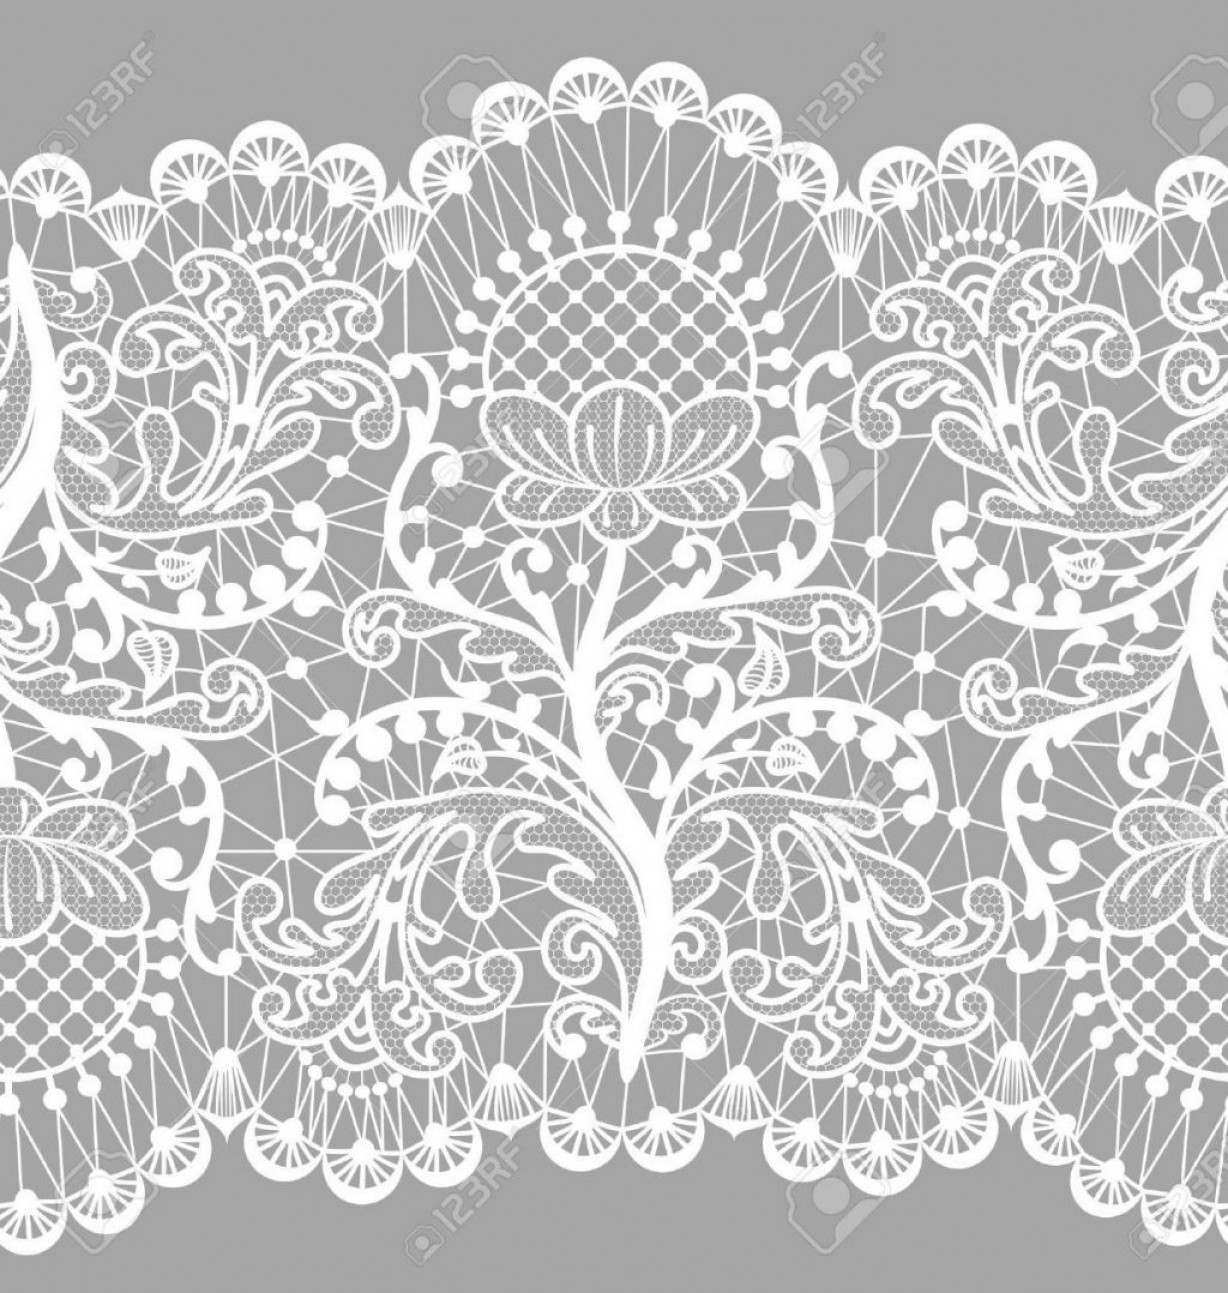 1228x1293 Hd Seamless Floral Lace Border On Gray Background Stock Vector